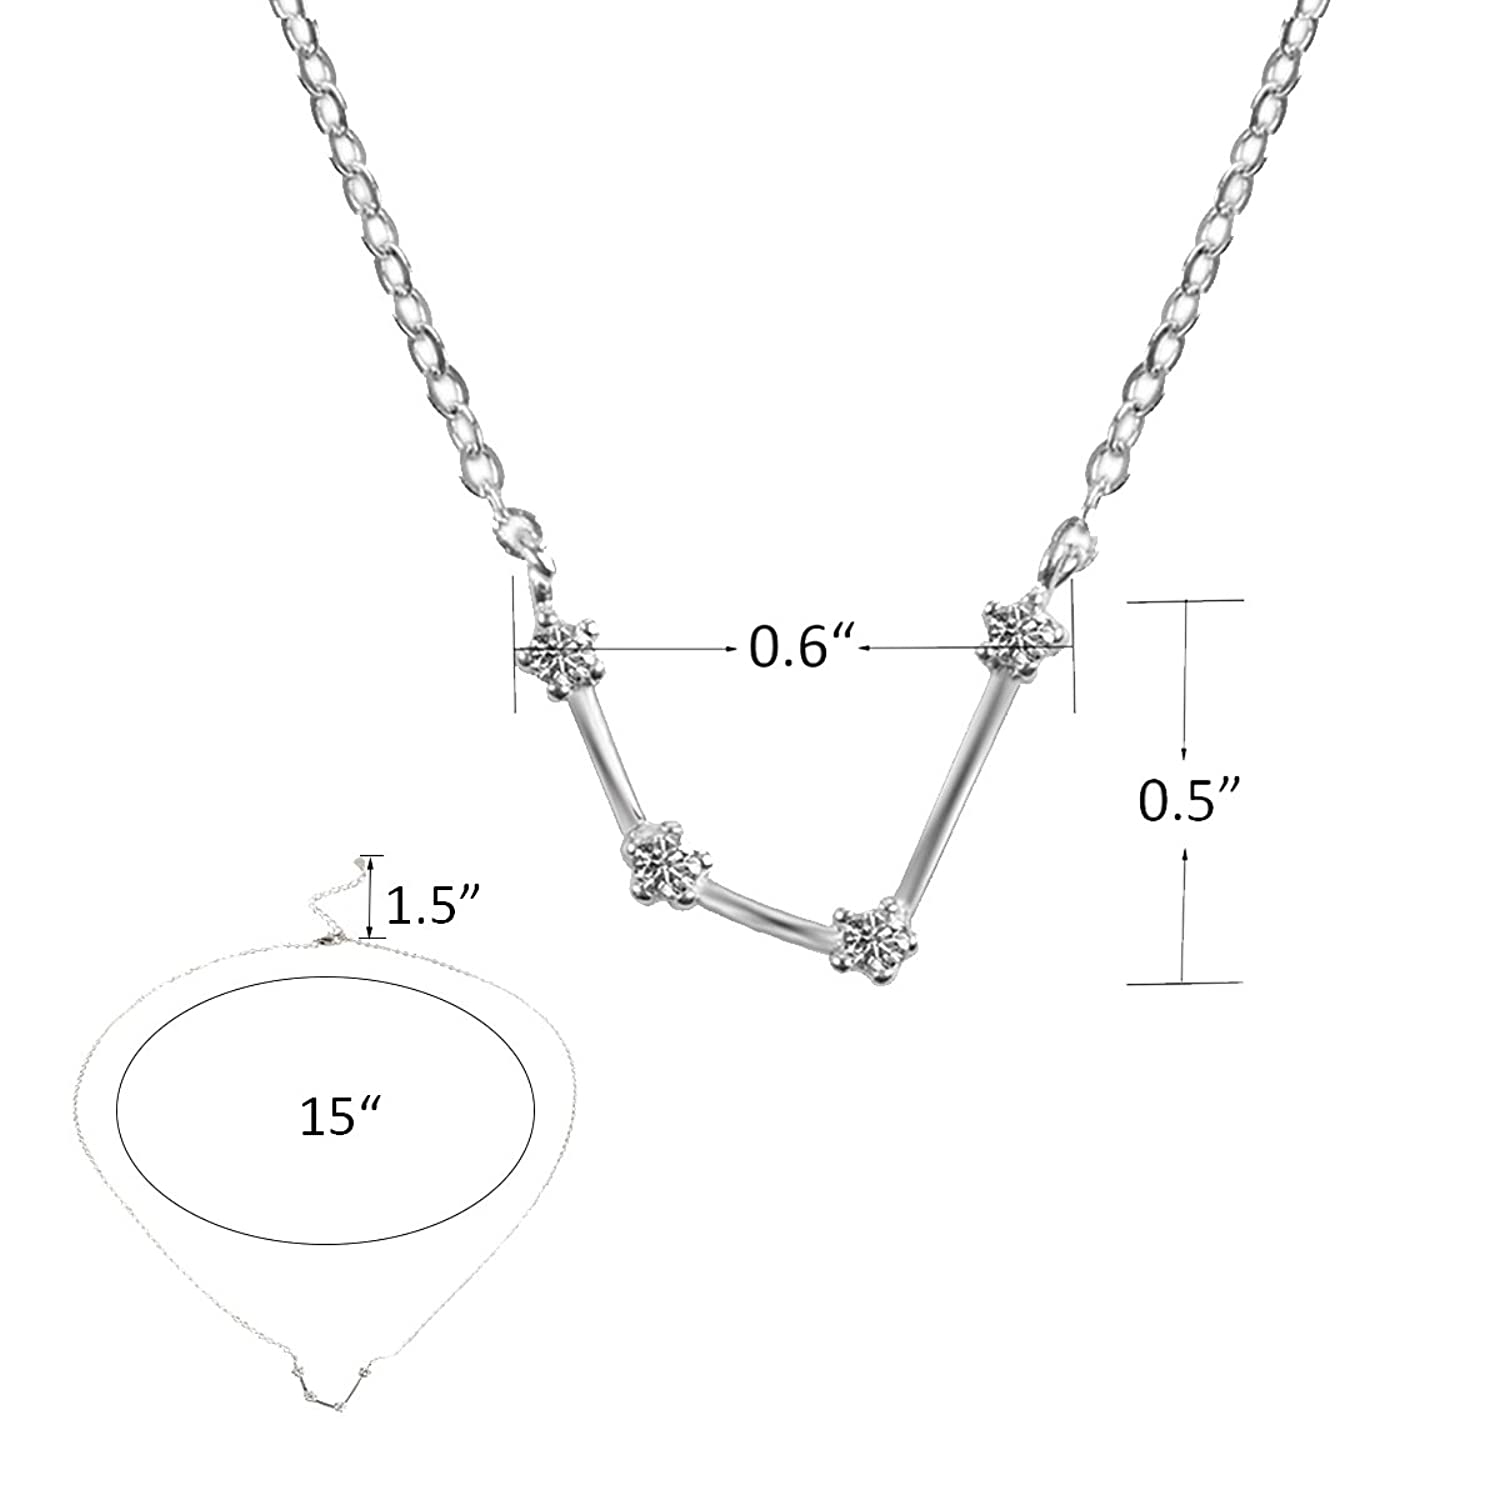 Amazon tqs horoscope plated silver necklace zodiac sign amazon tqs horoscope plated silver necklace zodiac sign pendant constellation charm astrology choker aquarius jewelry biocorpaavc Image collections